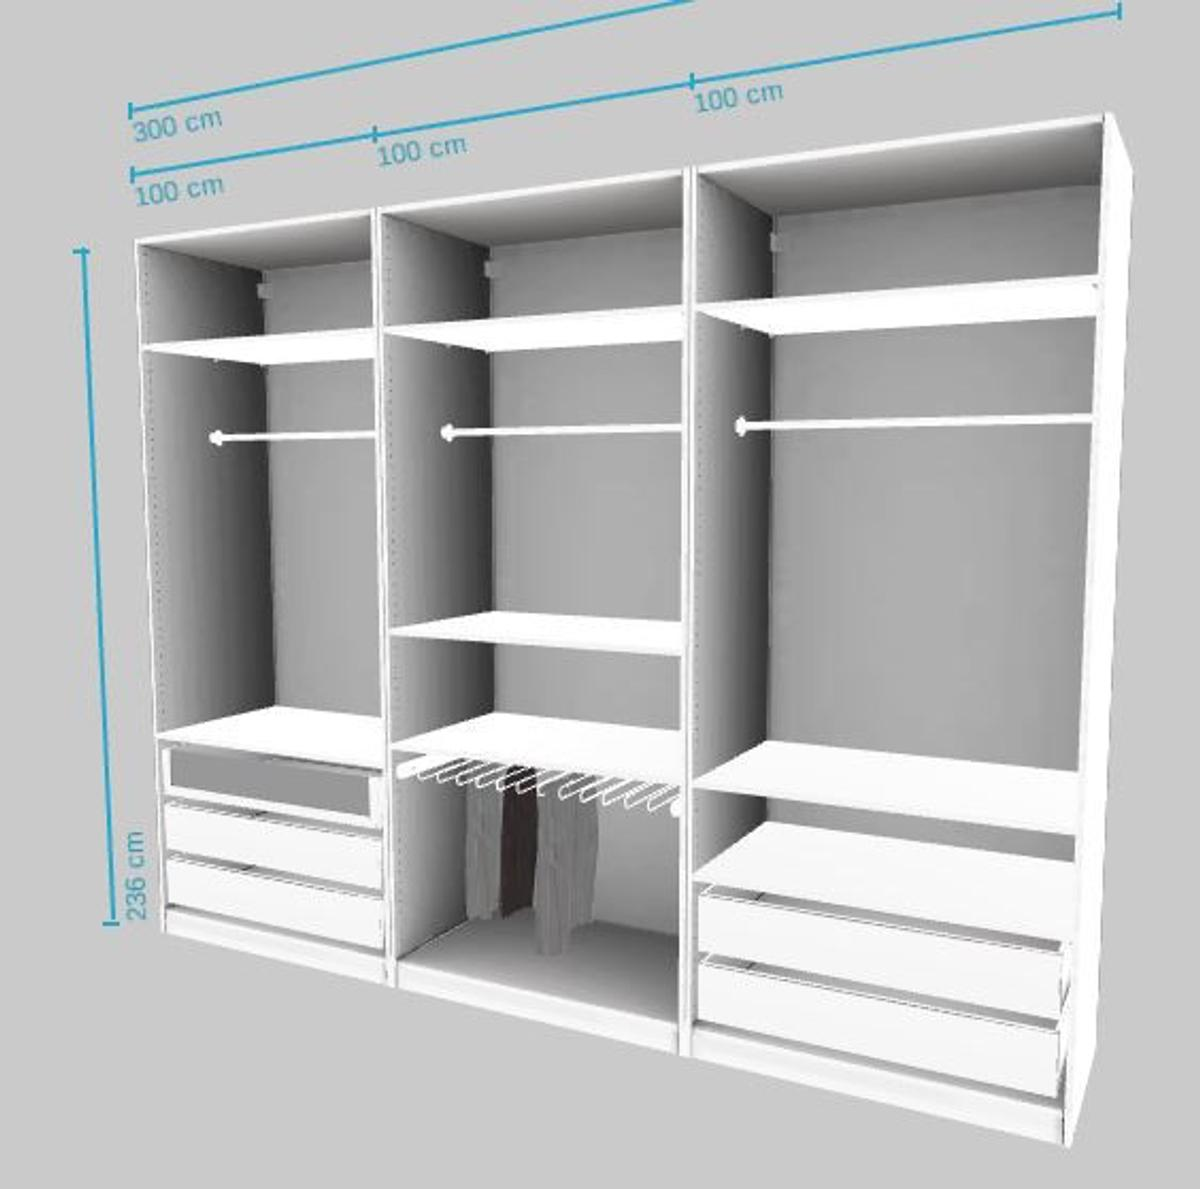 Ikea Pax Schrank 3 Meter X 2 36 Meter In 50354 Hurth For 320 00